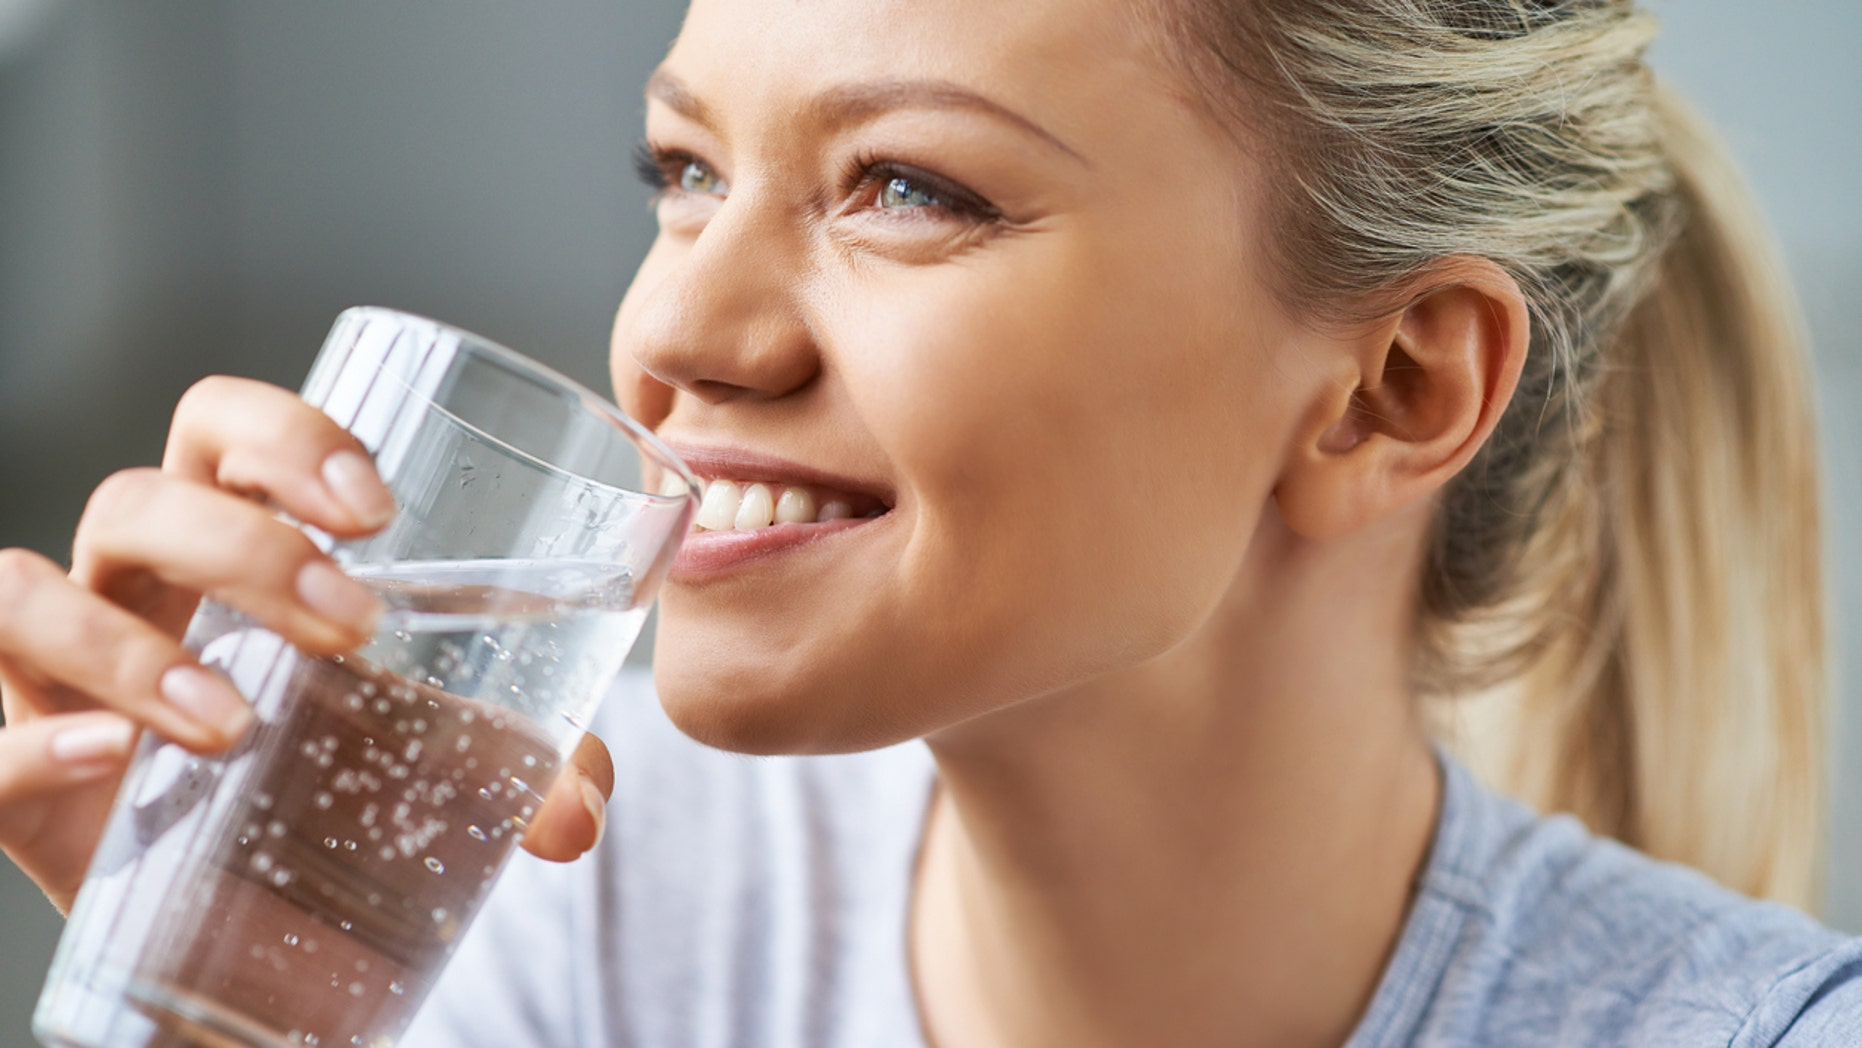 Hydrogen water: the truth about this new trend | Fox News